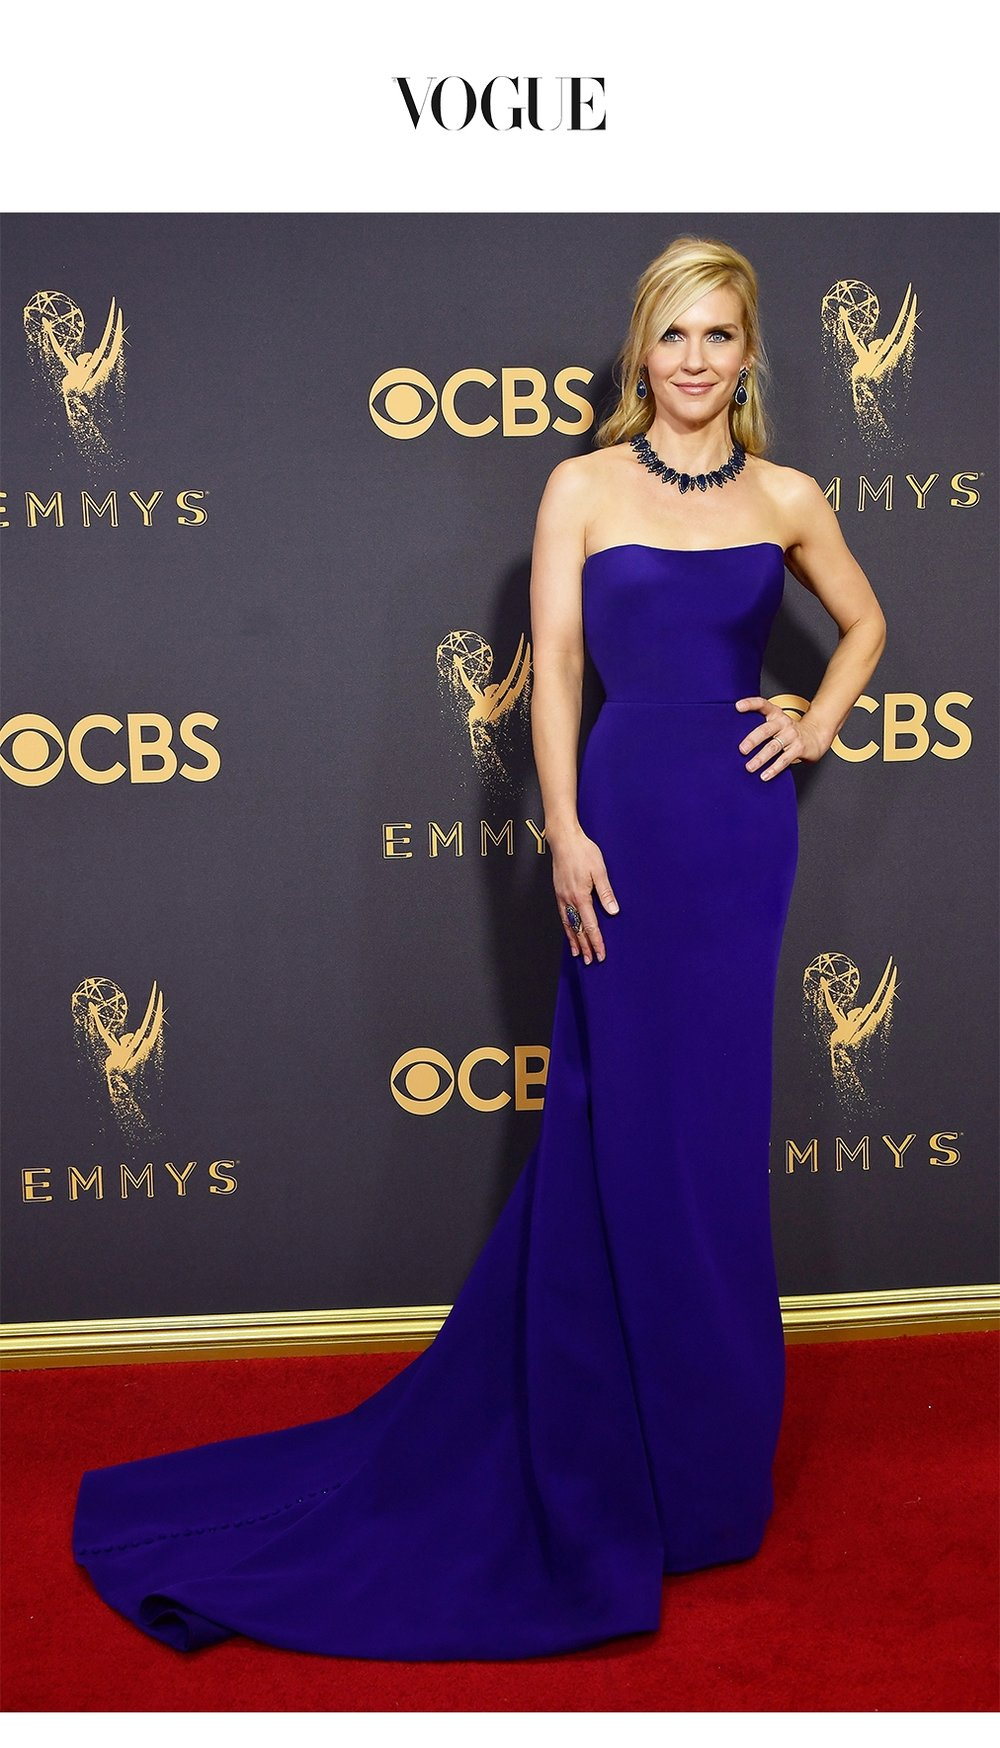 IN-THE-NEWS-WEB-EMMYS-2017-RHEA-SEEHORN.jpg